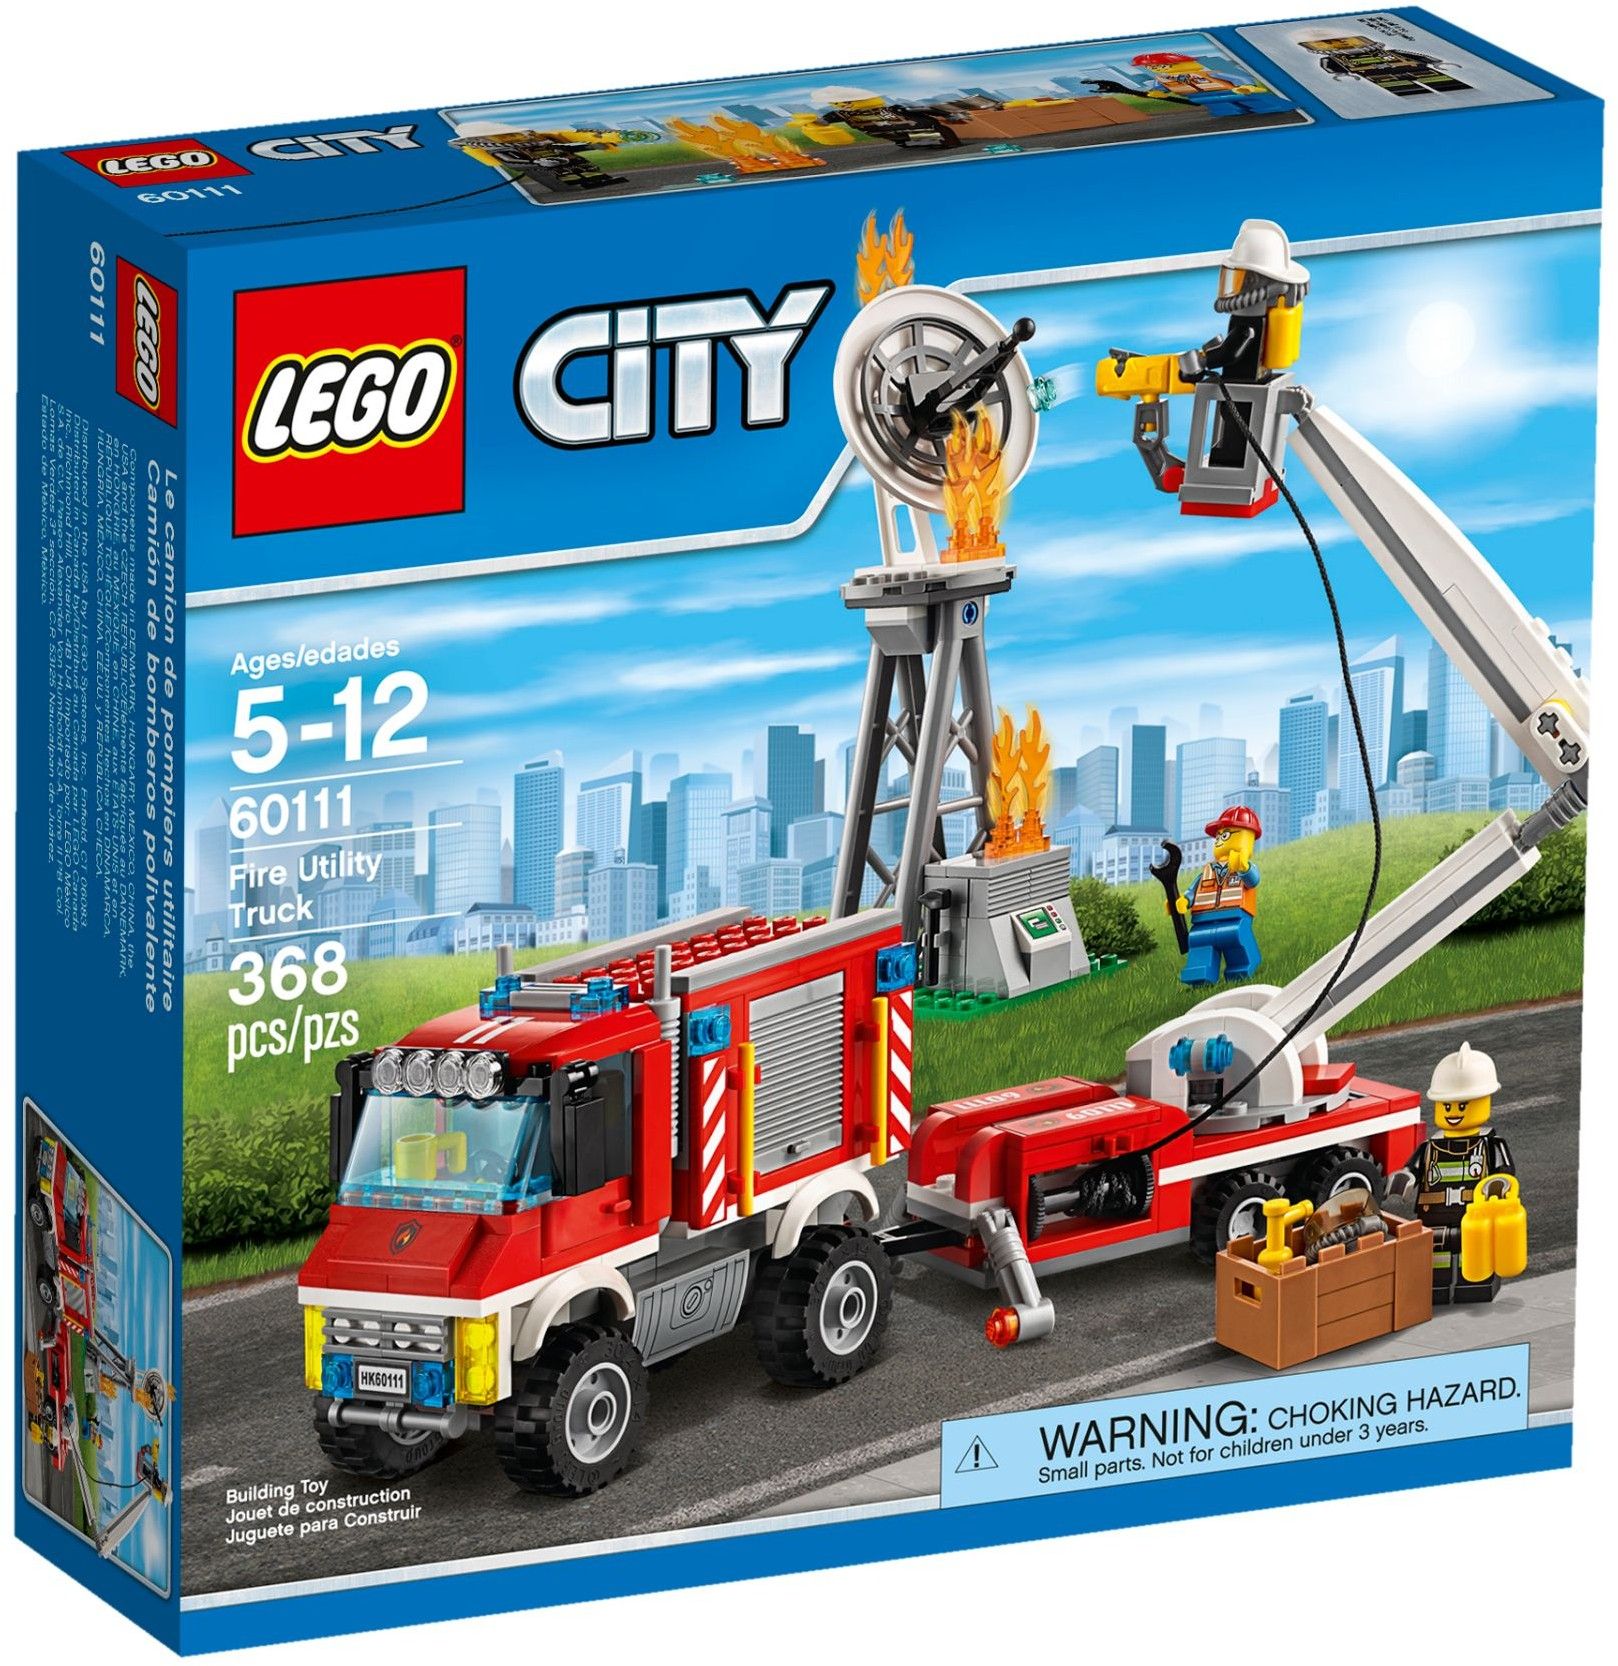 Lego city 60111 pas cher le camion d 39 intervention des pompiers - Lego city police camion ...